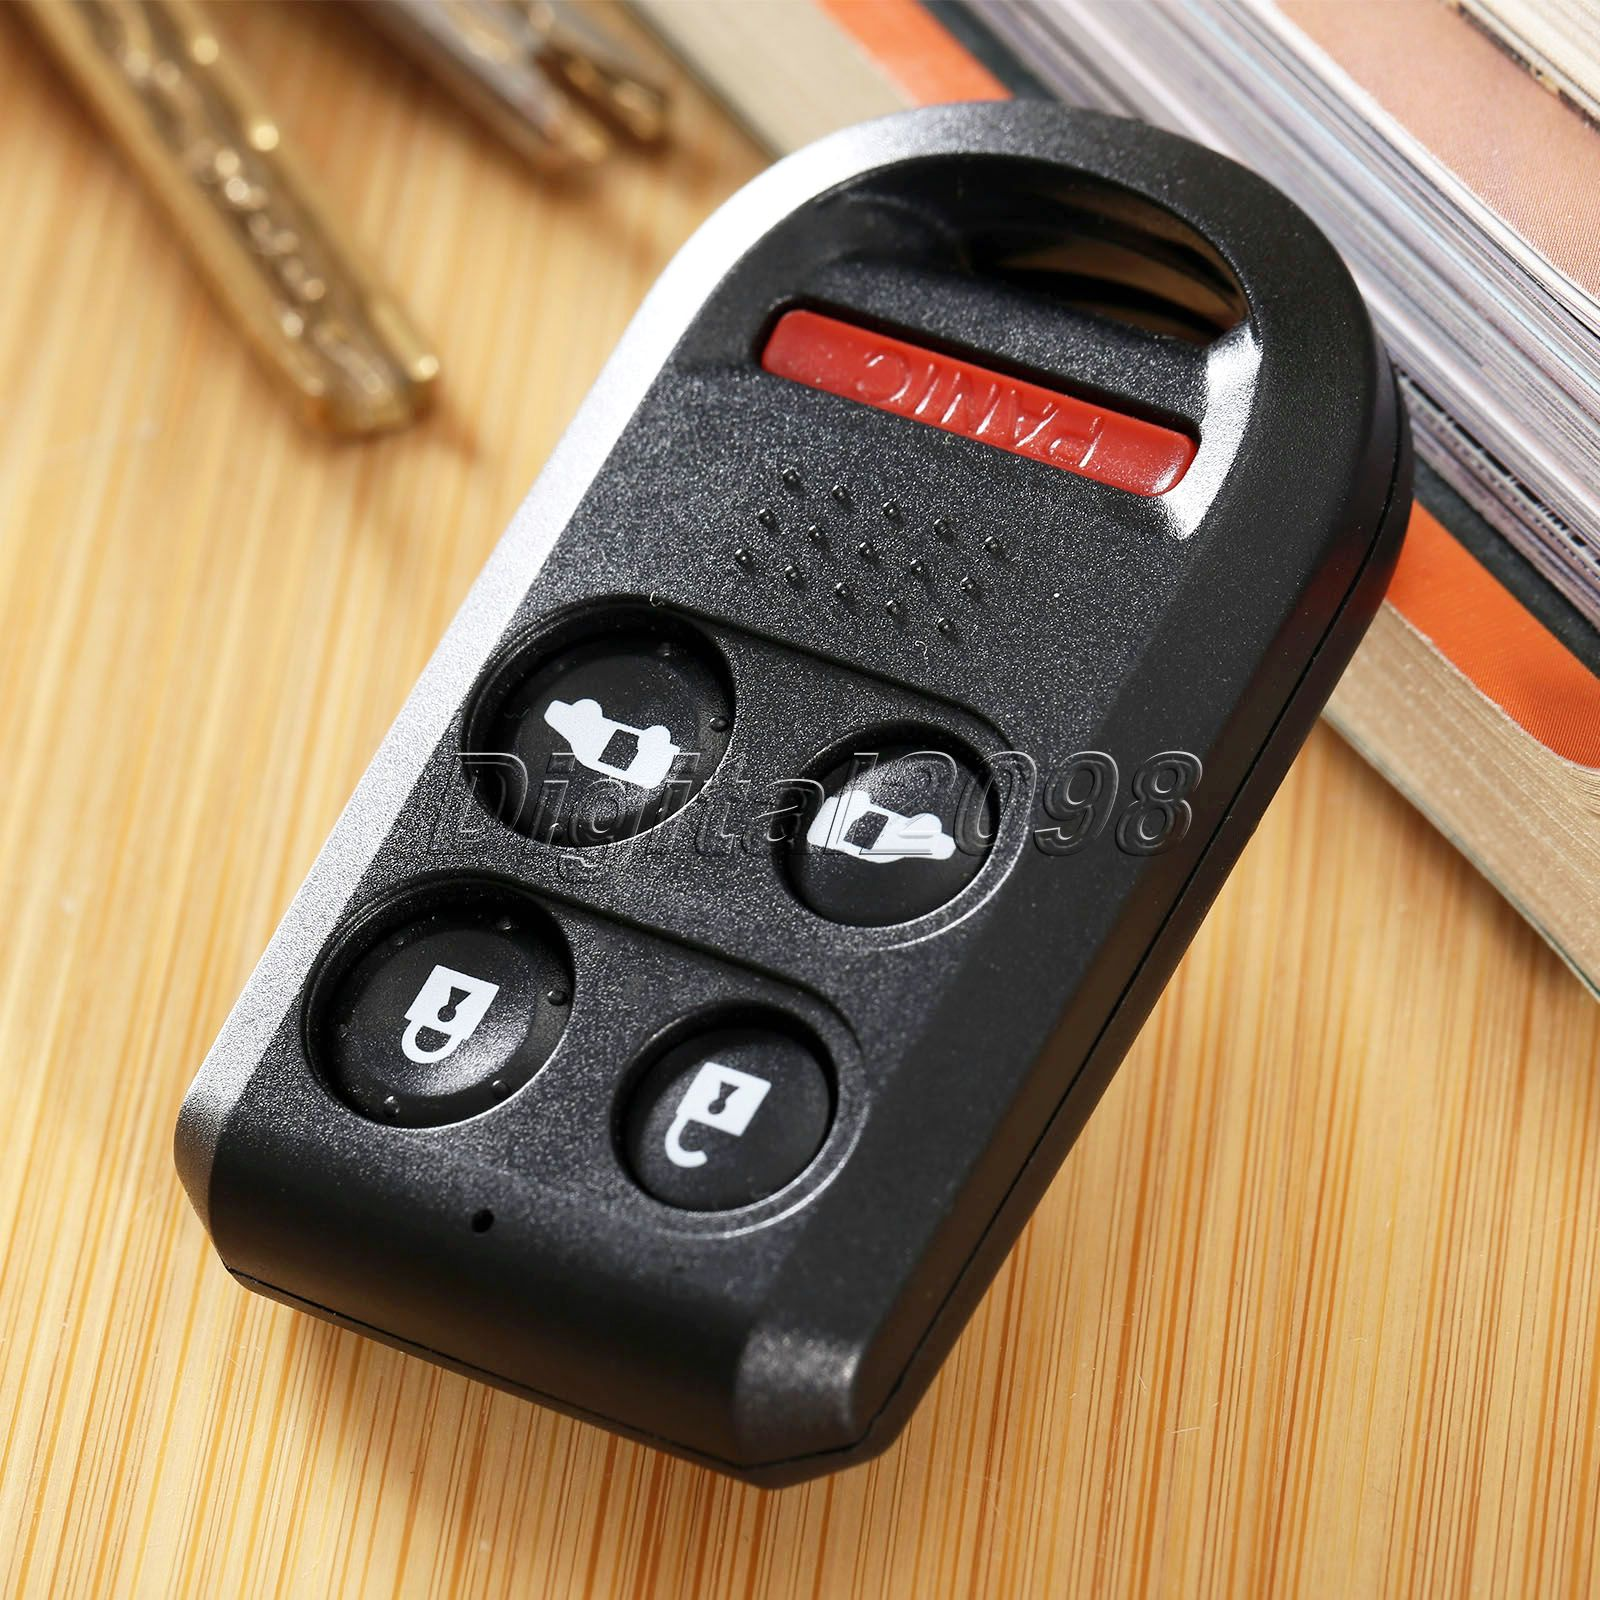 Yetaha 1Pc Replacement Remote Key Shell Case Fob 5 Button Fit for HONDA Odyssey Car Auto Parts Key Case Fob with Uncut Blade